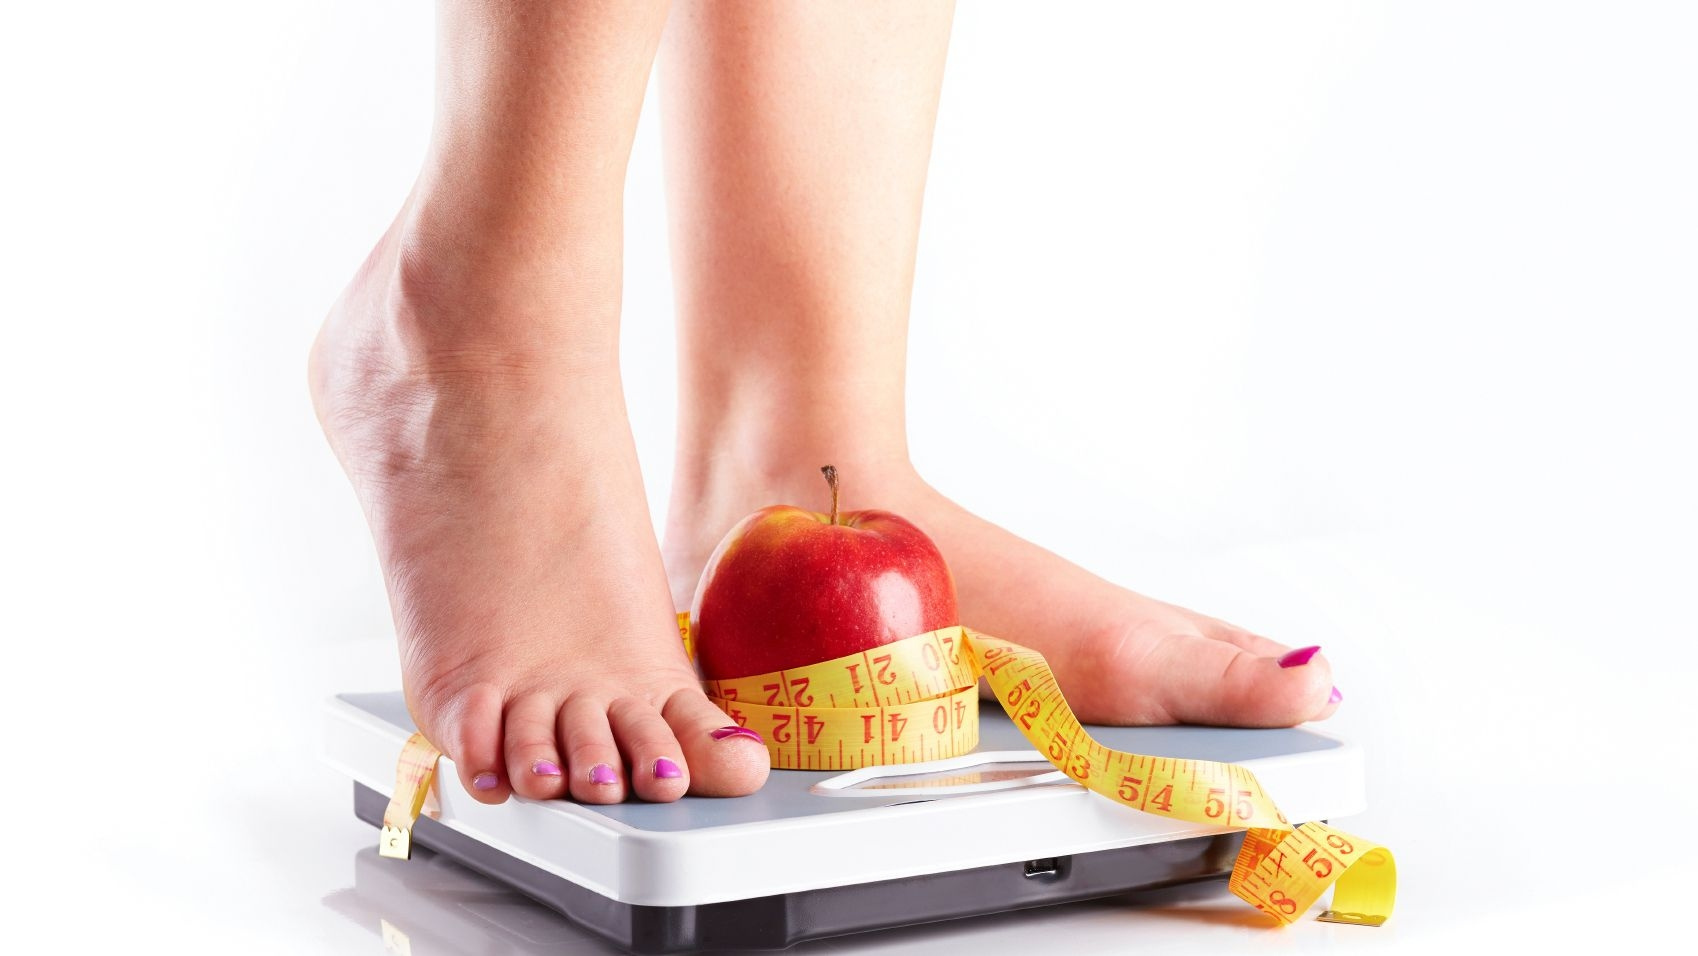 Weighing Yourself Daily May Help Reduce Holiday Weight: Study